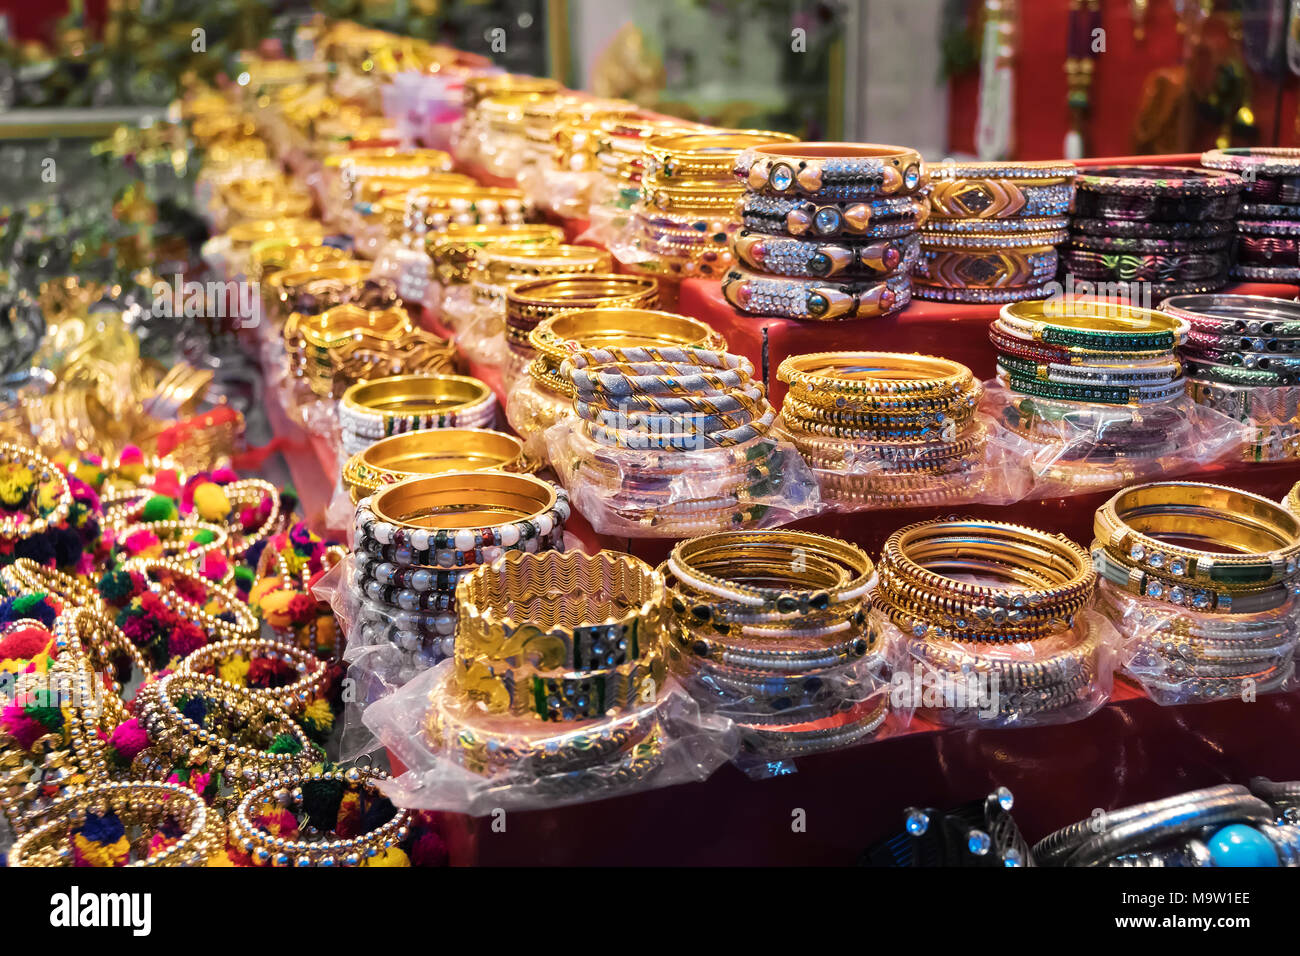 Bright colorful Tibetan traditional bracelets for sale on the street market. beautiful shiny charm bracelets and costume jewelry in Indian style - Stock Image